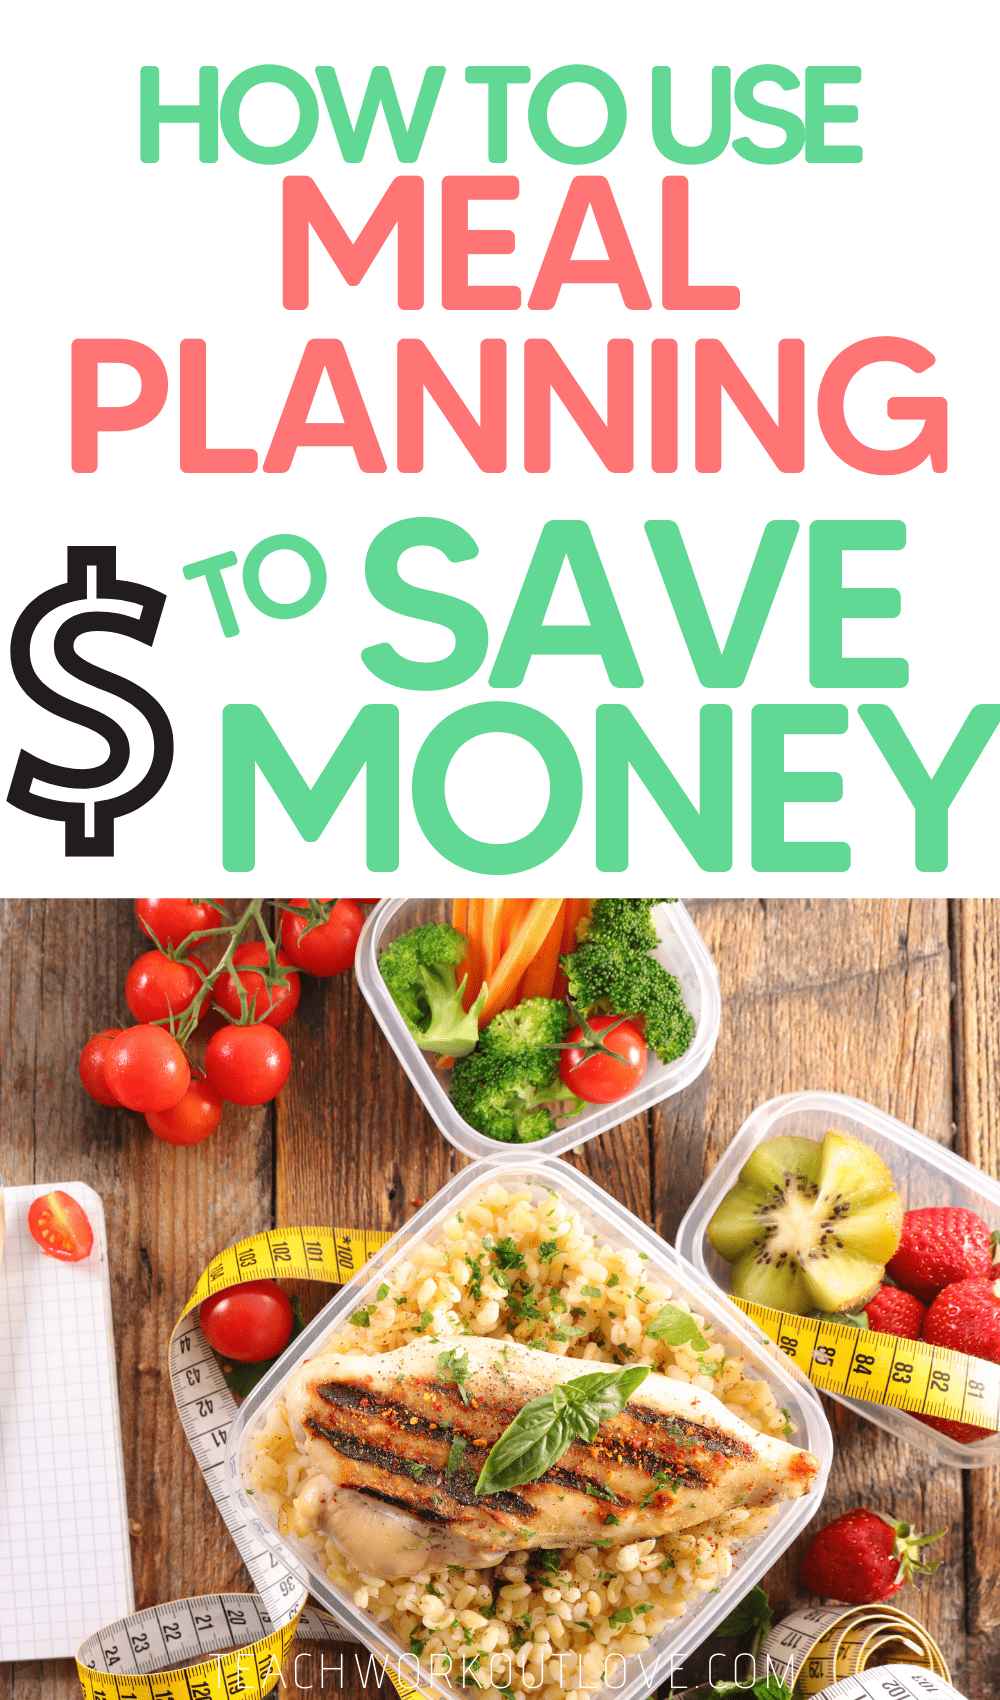 As a busy mom, food preparation & saving money is difficult with kids! Here's how meal prepping can help you save money & time.